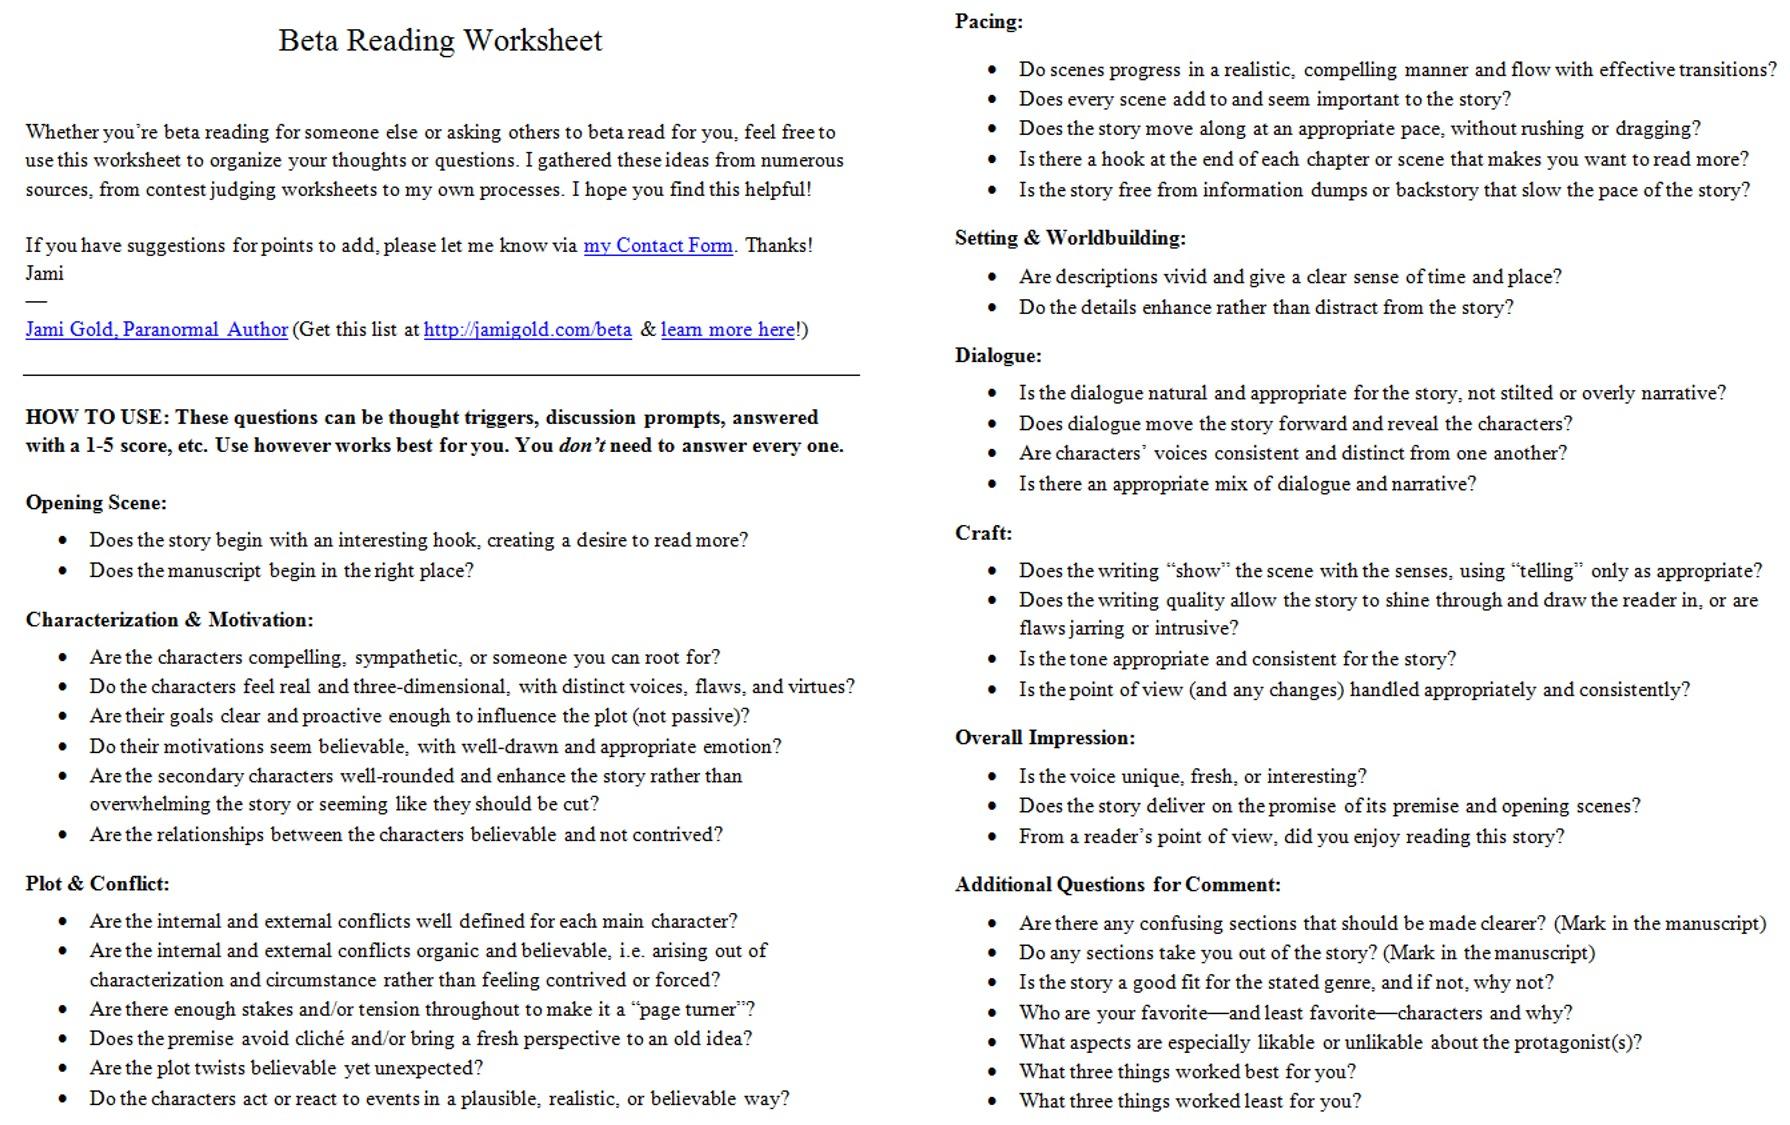 Aldiablosus  Personable Worksheets For Writers  Jami Gold Paranormal Author With Fetching Screen Shot Of The Twopage Beta Reading Worksheet With Delightful Letter M Tracing Worksheet Also Ed Endings Worksheet In Addition Abc Tracing Worksheets For Kindergarten And Very Hungry Caterpillar Worksheets As Well As Free Printable Character Education Worksheets Middle School Additionally First Amendment Worksheet From Jamigoldcom With Aldiablosus  Fetching Worksheets For Writers  Jami Gold Paranormal Author With Delightful Screen Shot Of The Twopage Beta Reading Worksheet And Personable Letter M Tracing Worksheet Also Ed Endings Worksheet In Addition Abc Tracing Worksheets For Kindergarten From Jamigoldcom